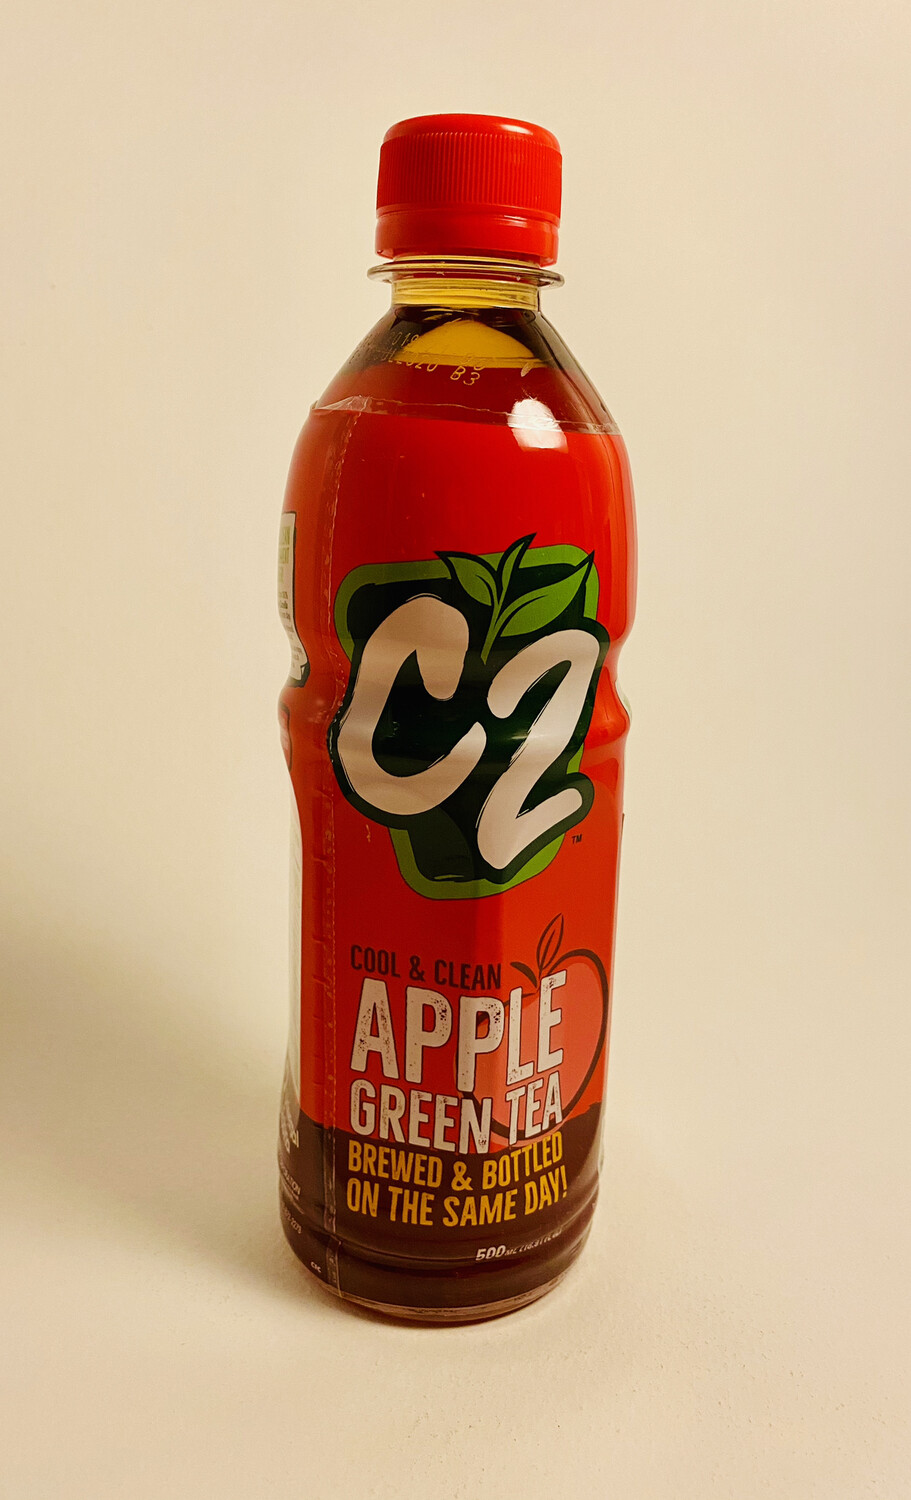 C2 Cool & Green - Apple Green Tea - 500 ML